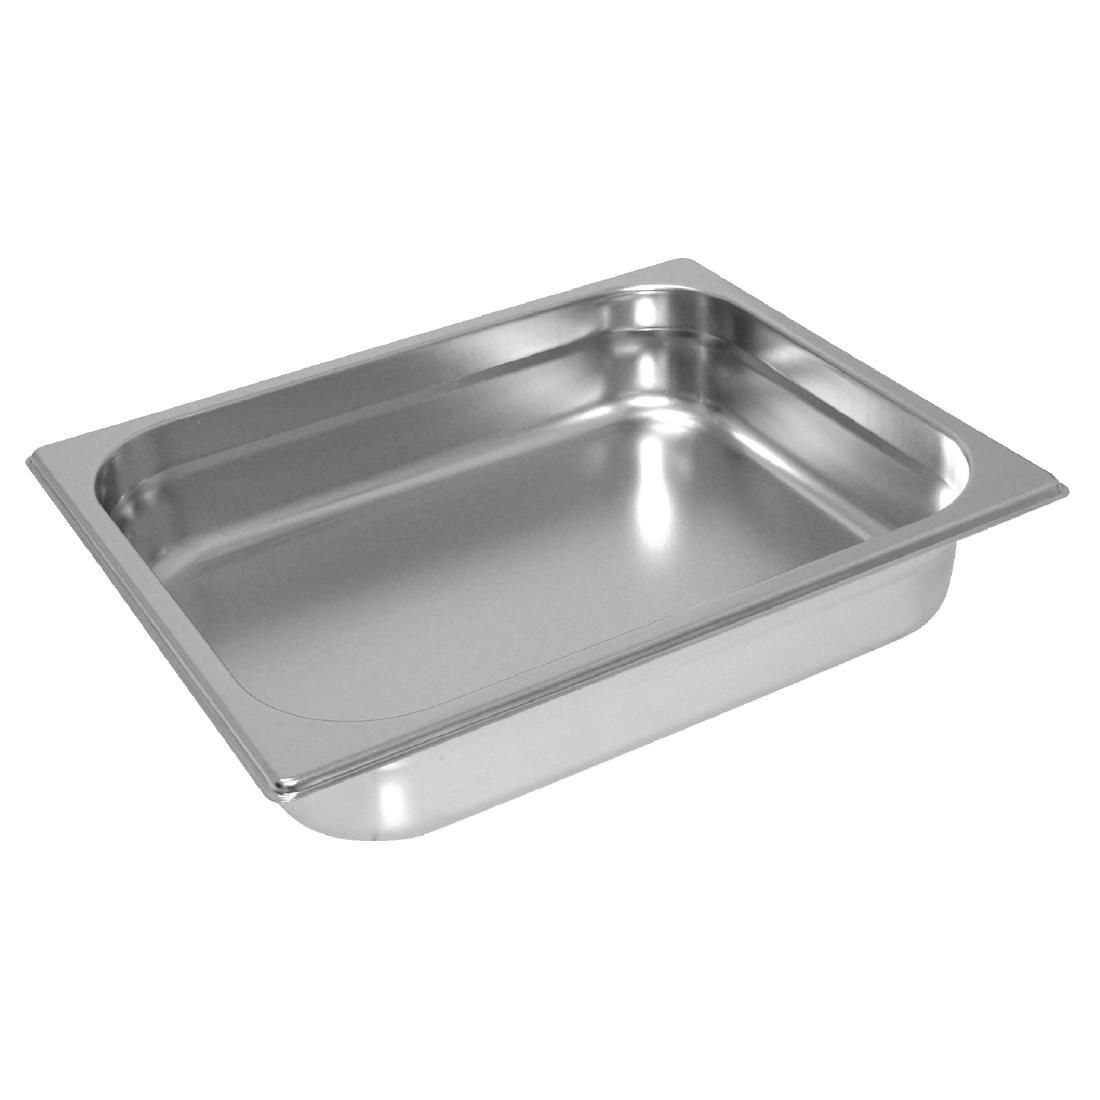 Vogue Heavy Duty Stainless Steel 1/2 Gastronorm Pan 65mm